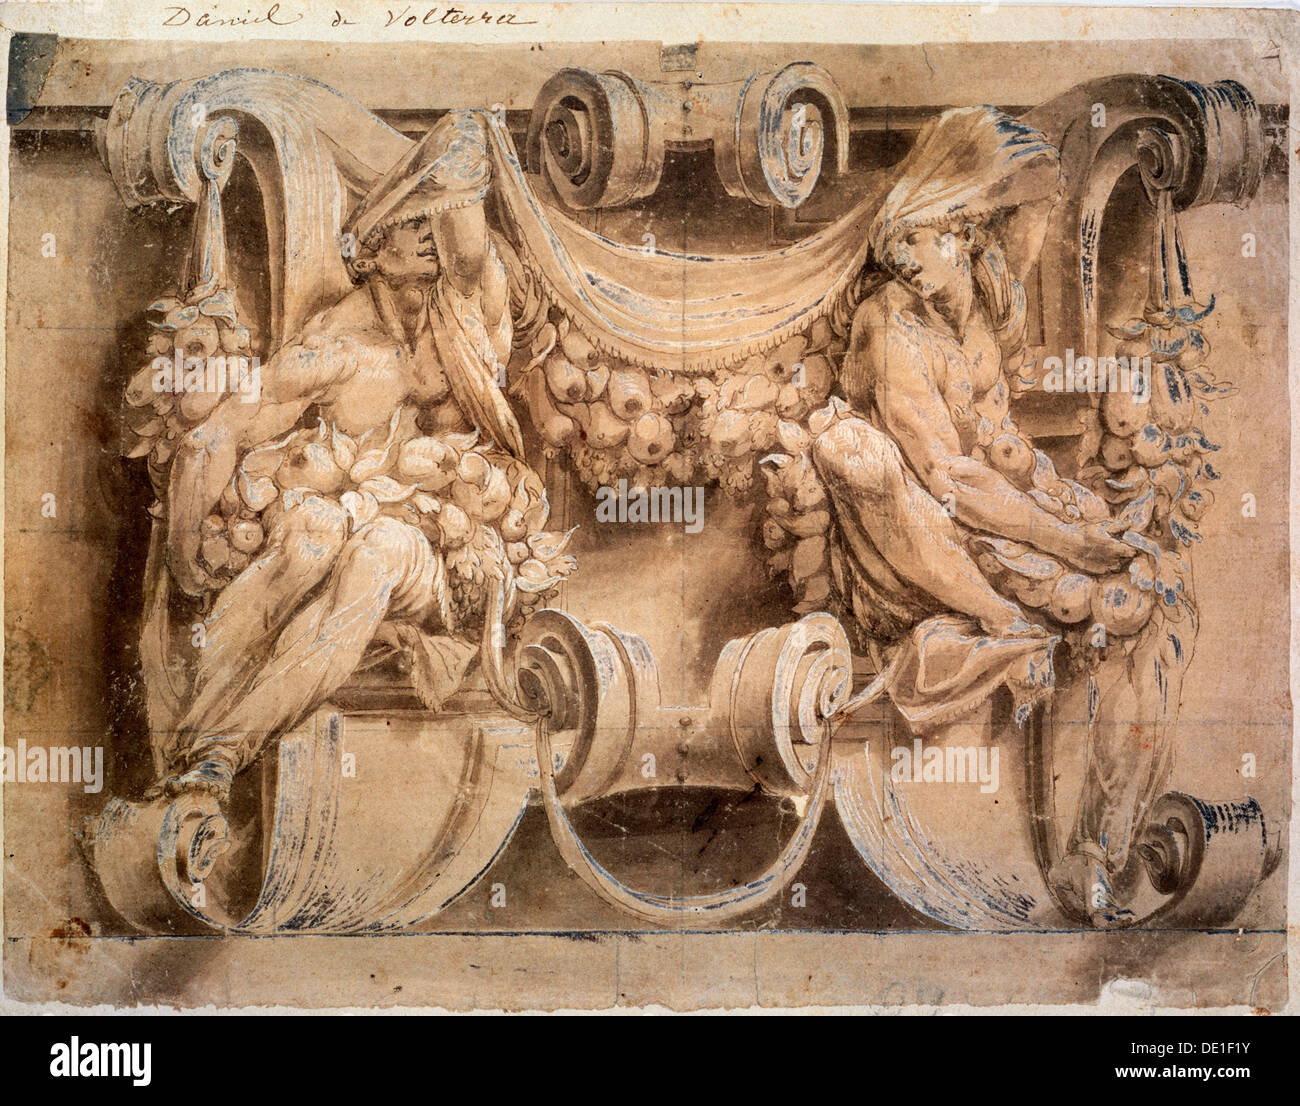 'Sketch for a frieze with two cariatides', 1546-1554.  Artist: Lelio Orsi - Stock Image